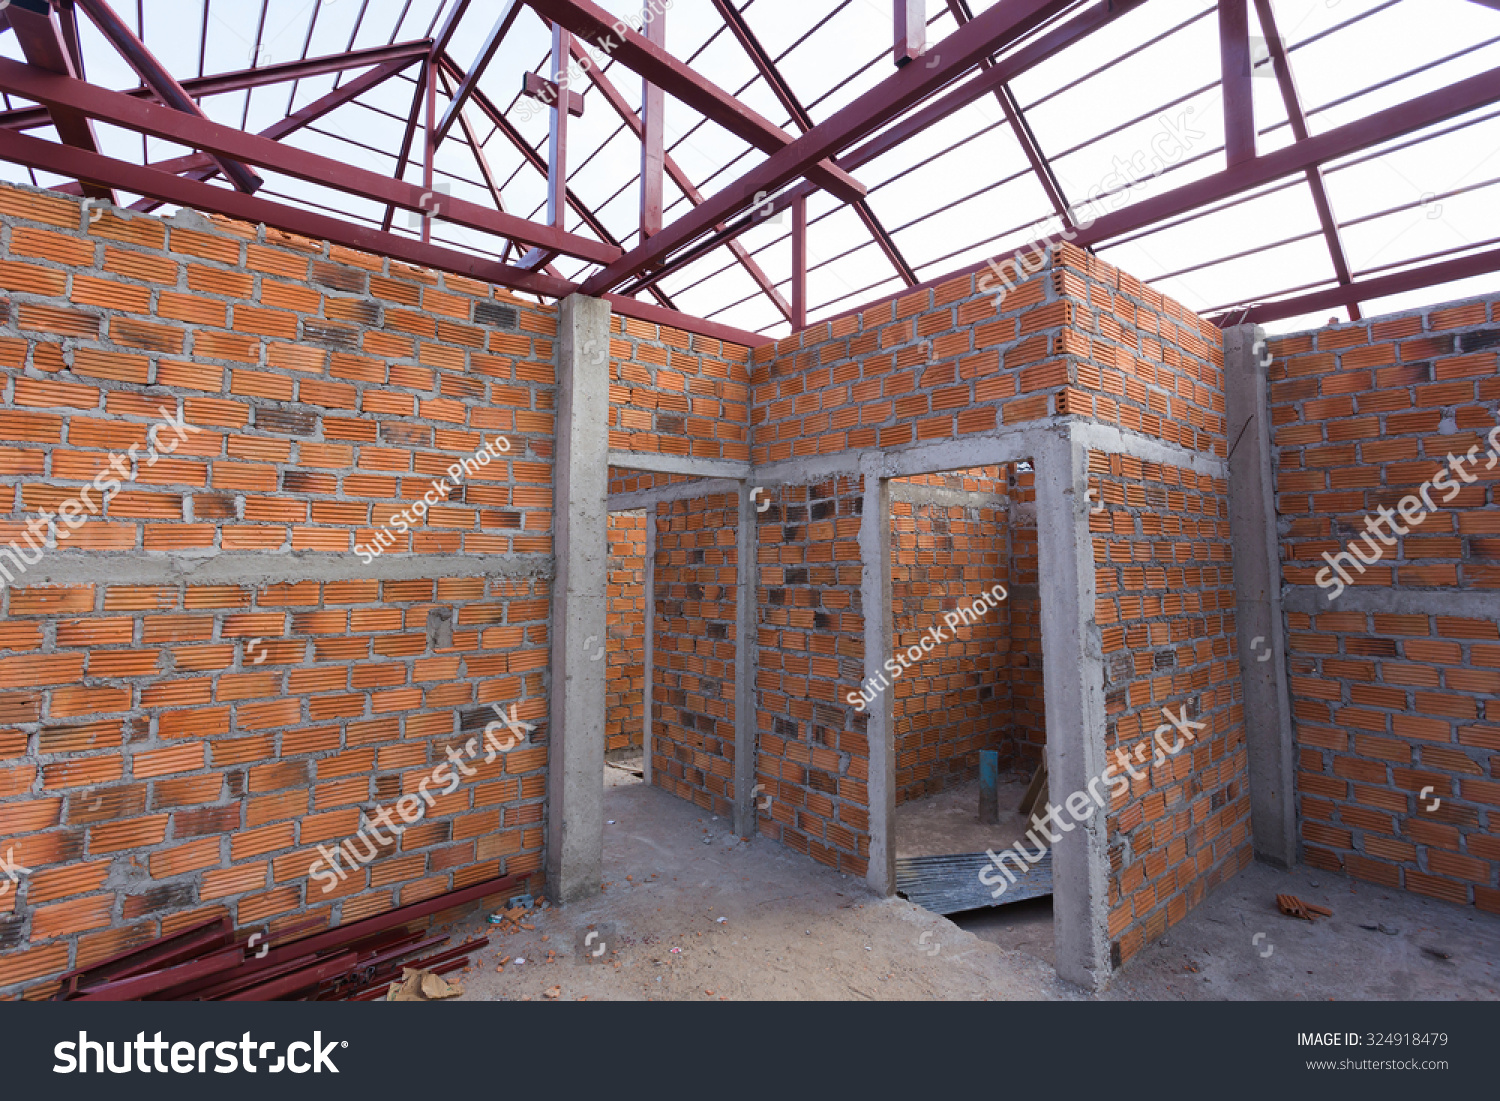 Structural Steel Beam On Roof Brick Stock Photo 324918479